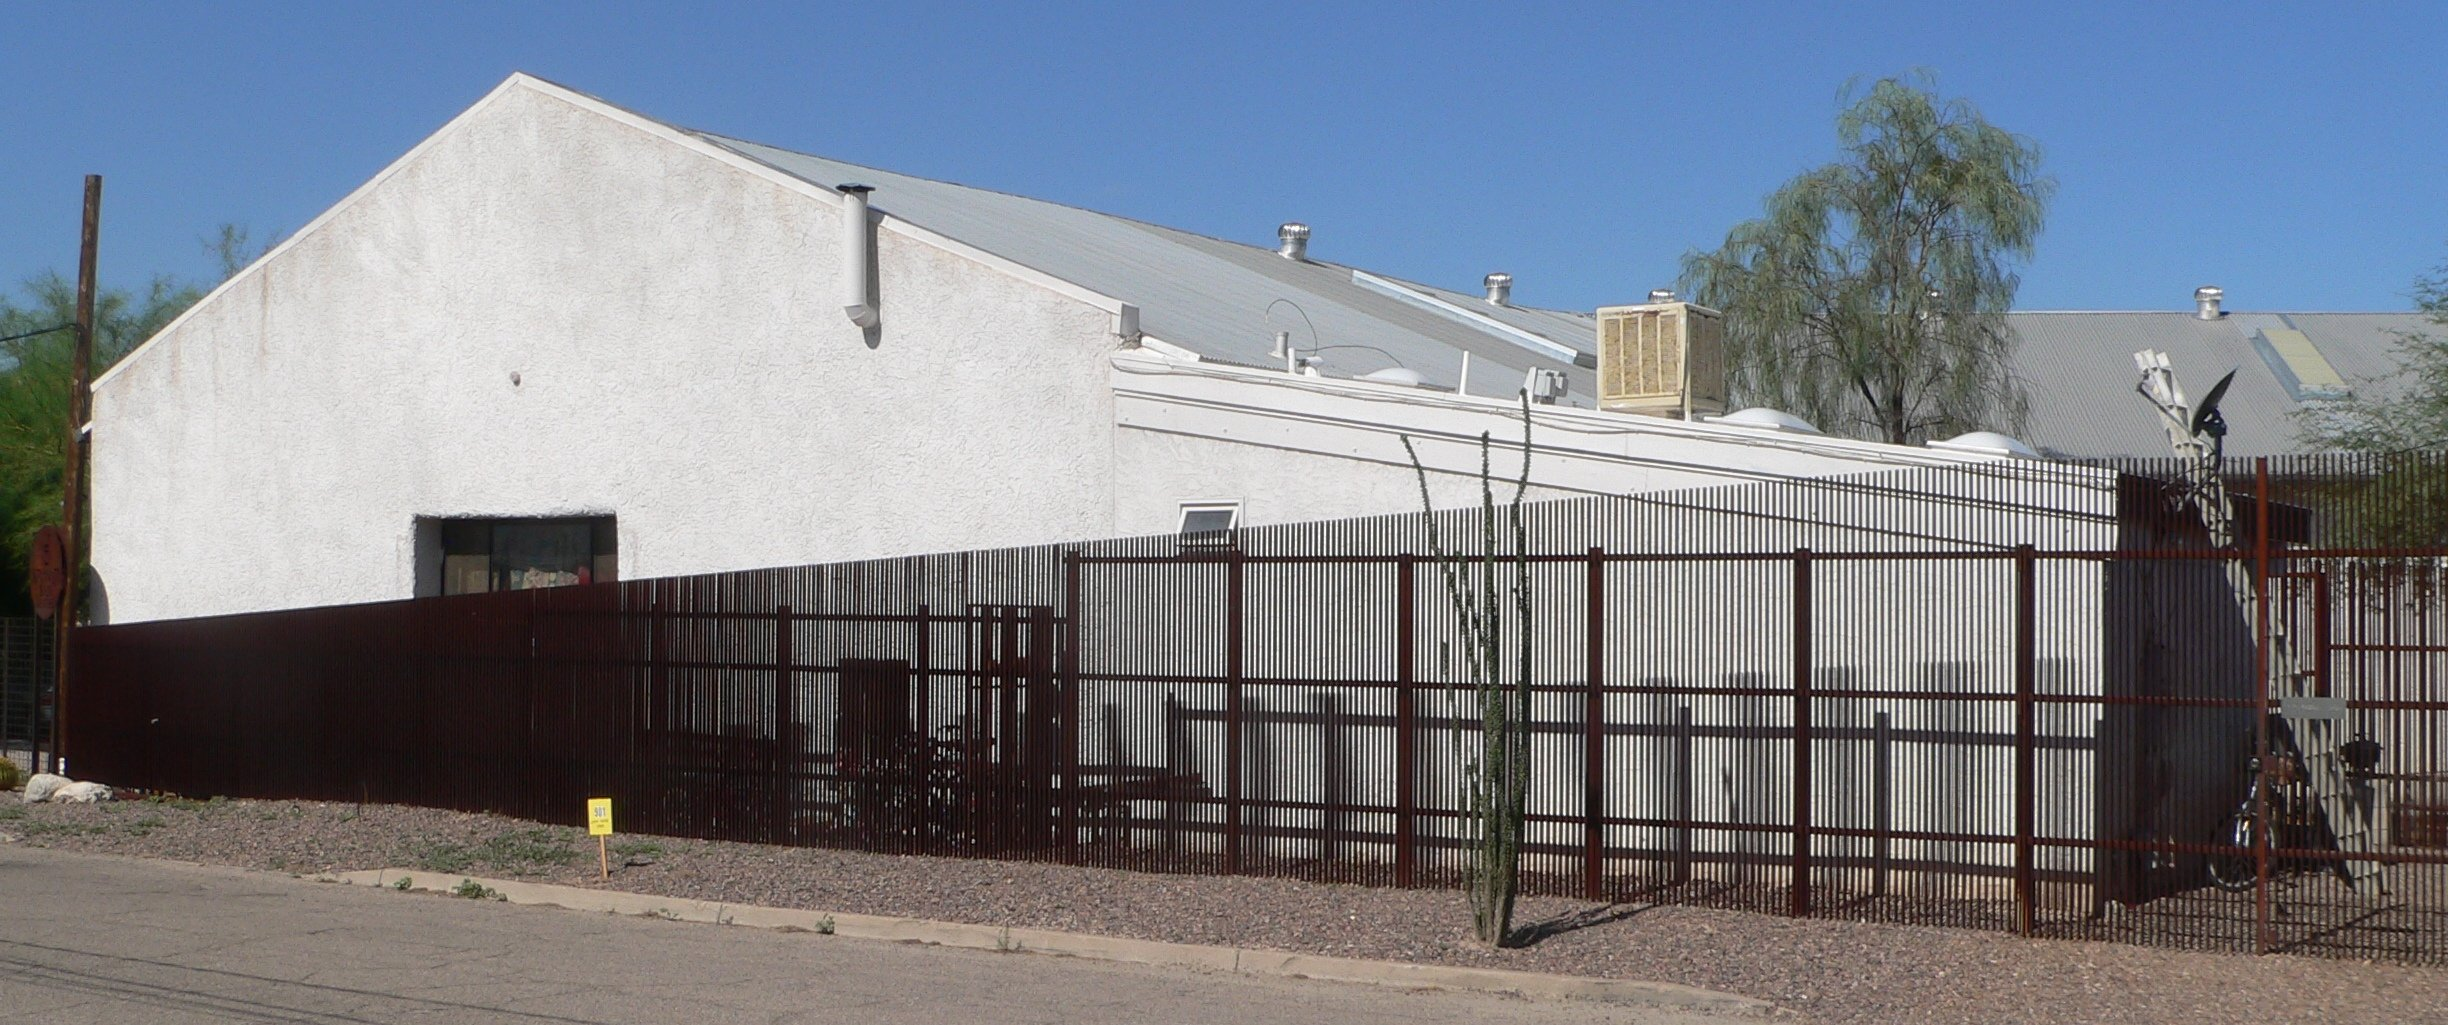 Top Rated Fence Company Near Me In Tucson Az